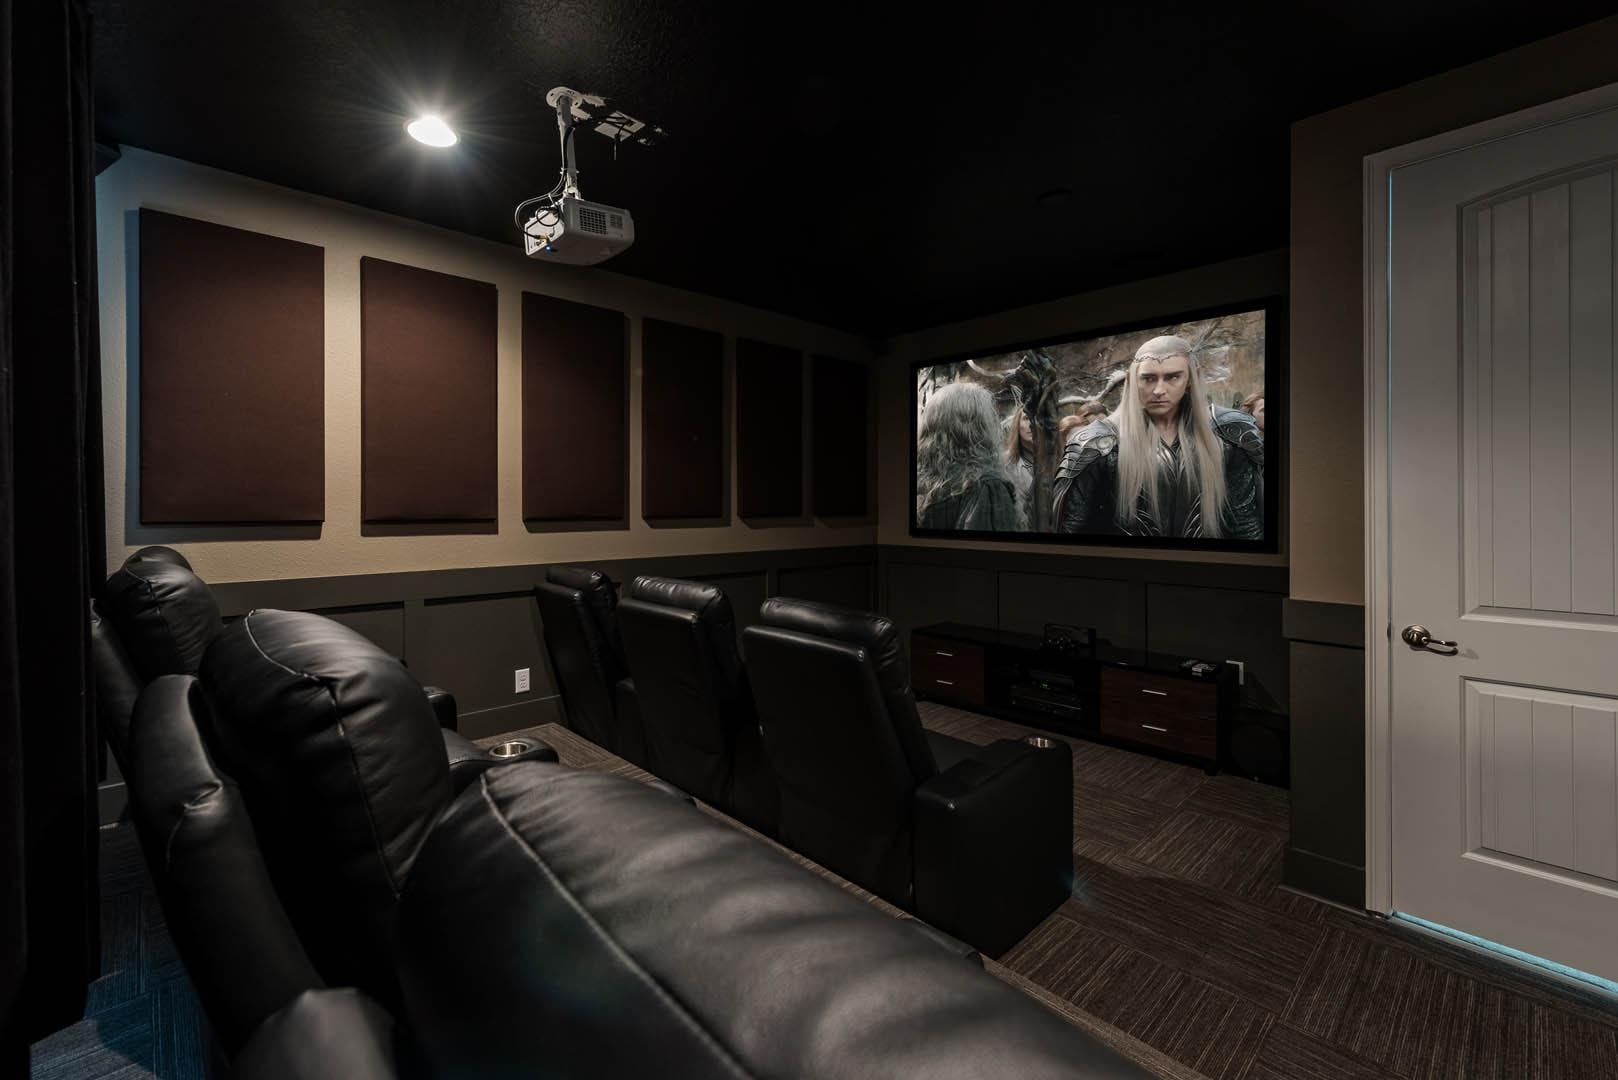 Property Image 1 - Colorful Home with Theater Room near Disney